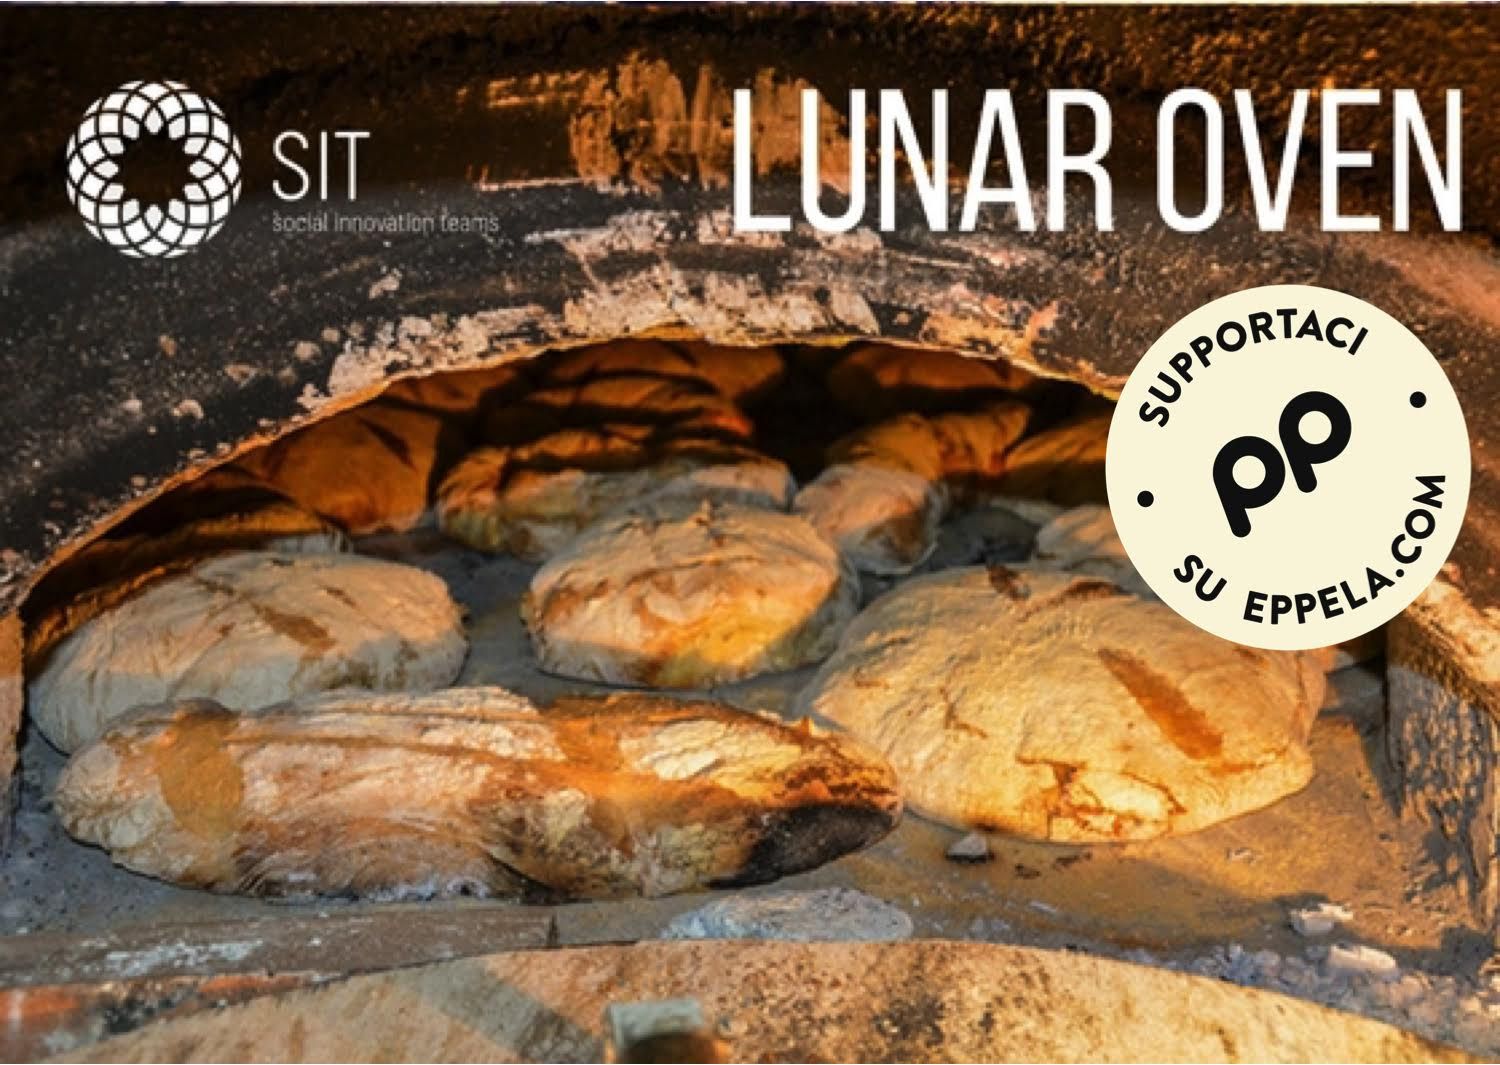 CROWDFUNDING LUNAR OVEN - cover